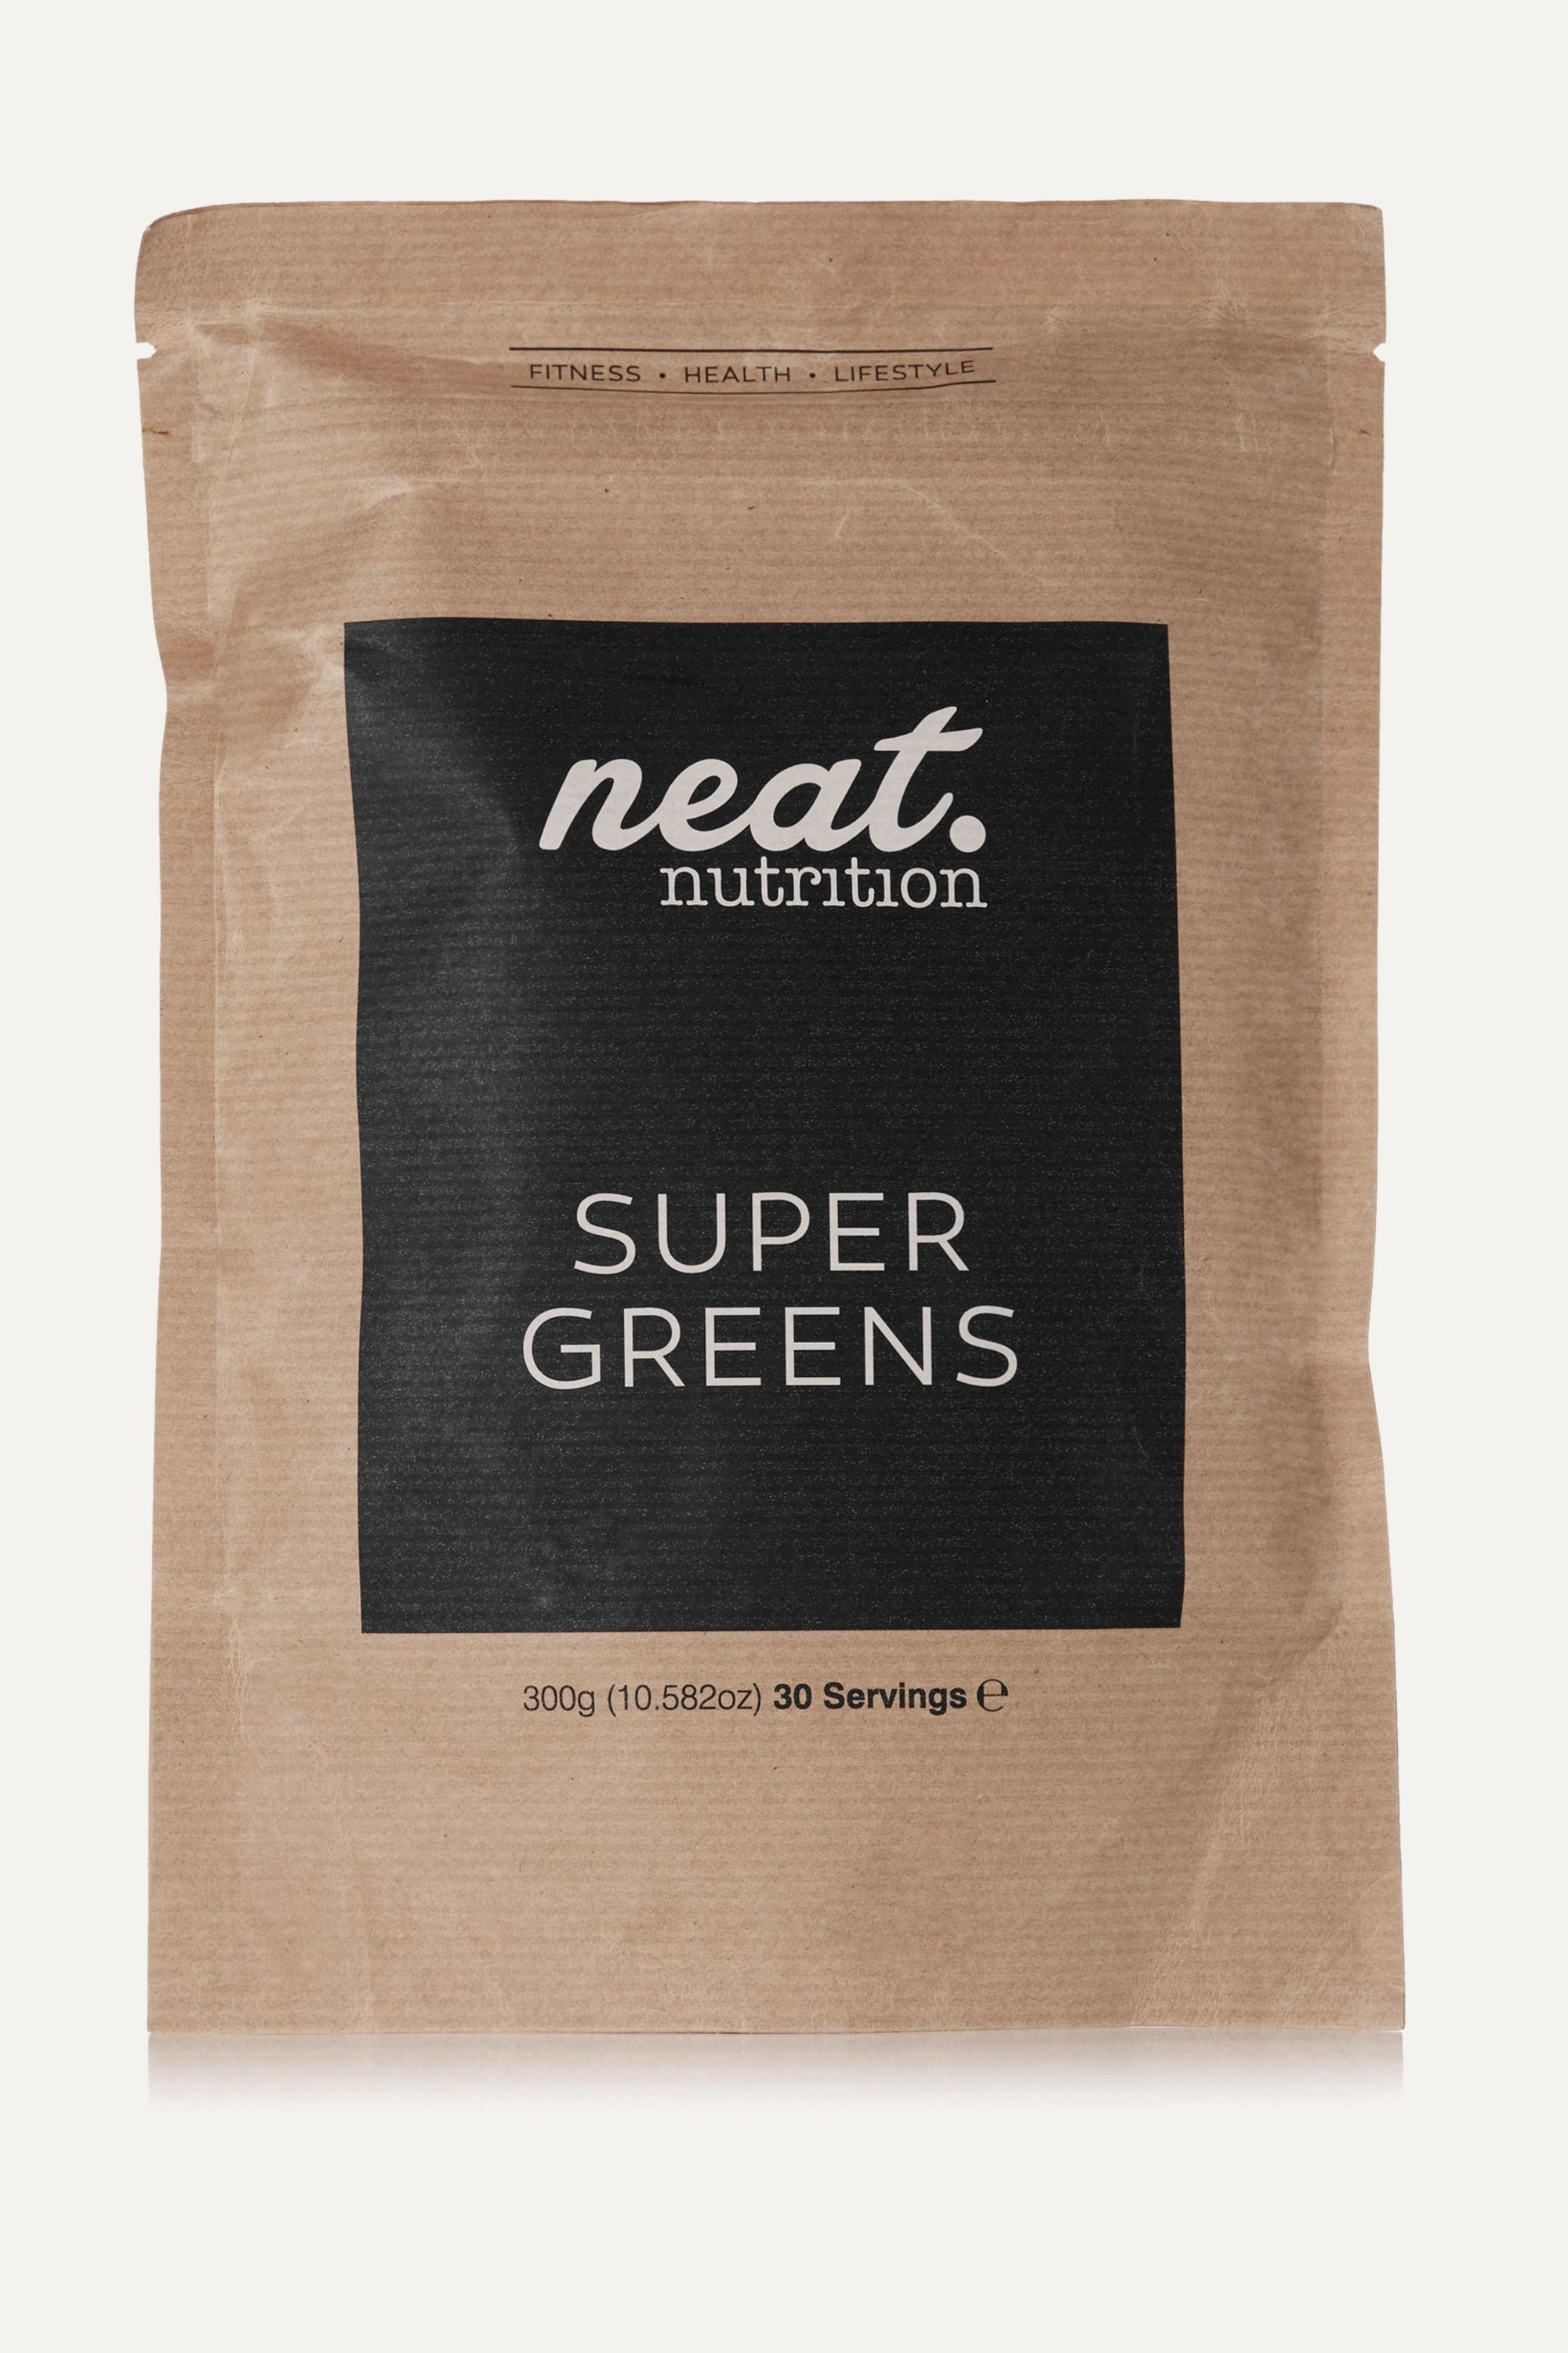 Neat Nutrition Super Greens, 300g